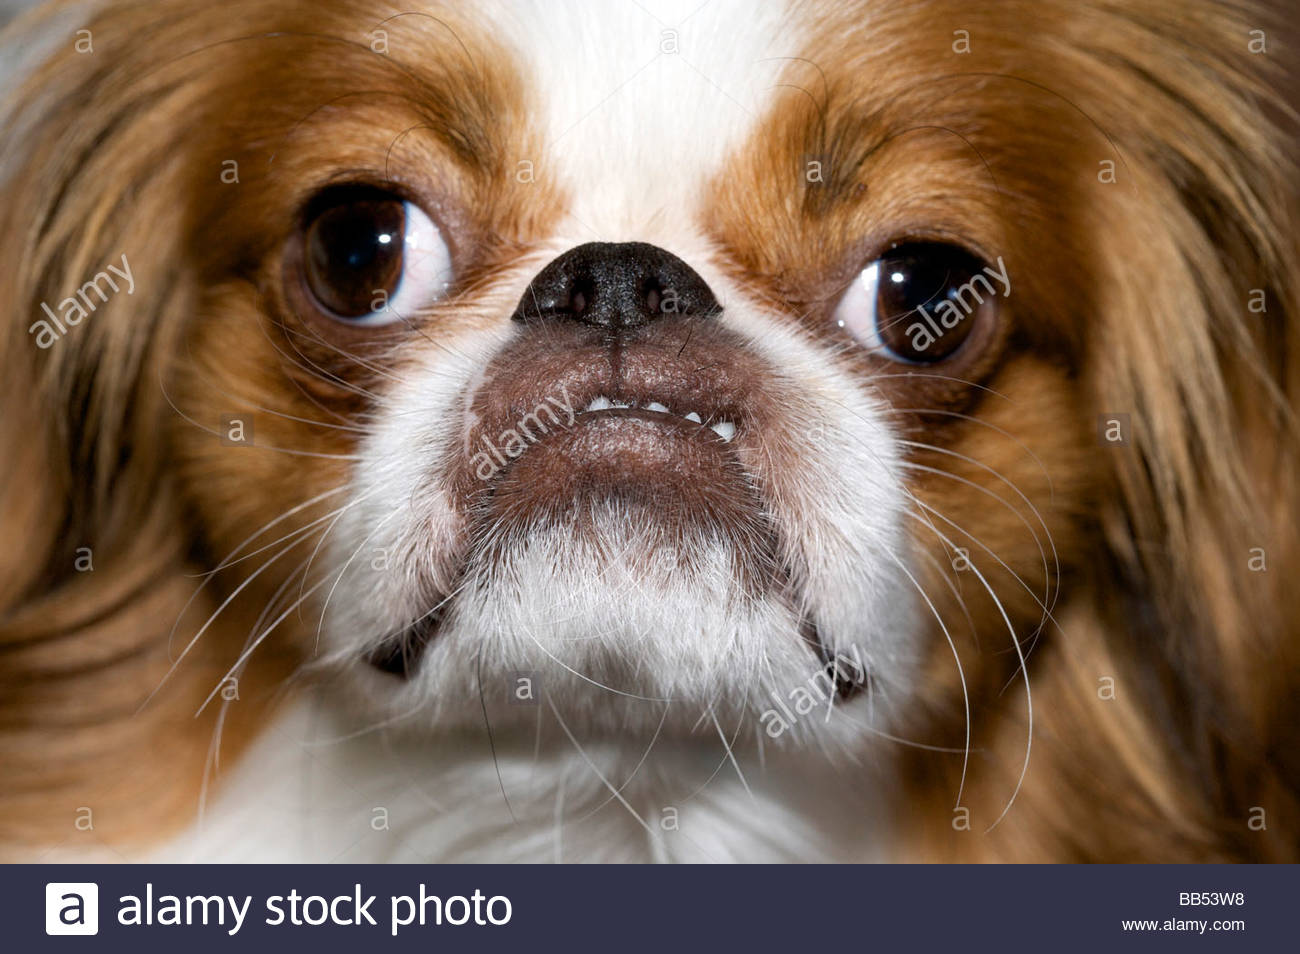 Little dog pulling a funny face stock photo 24084404 alamy little dog pulling a funny face voltagebd Gallery